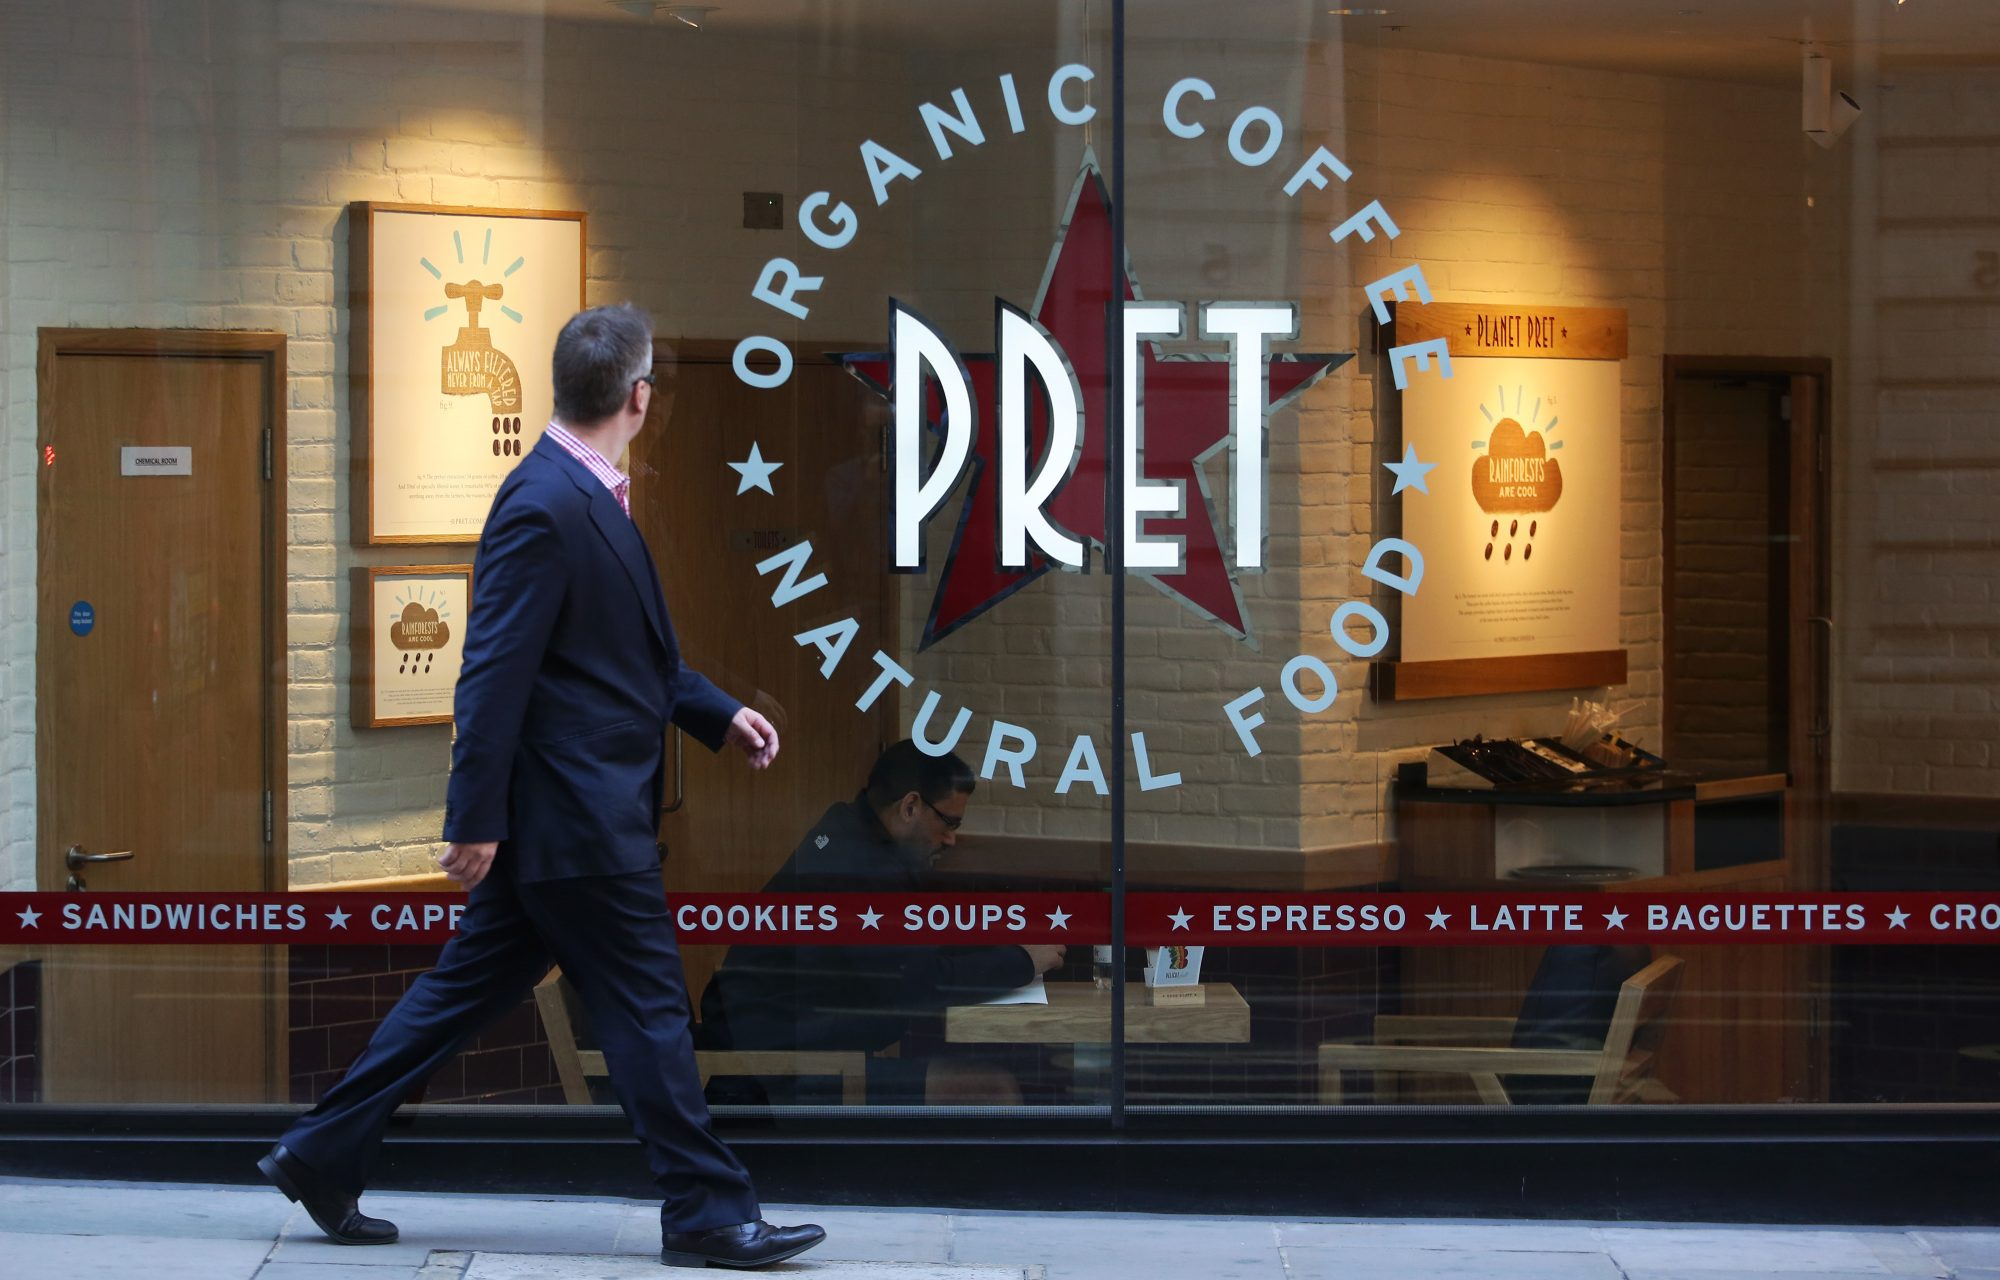 Retail Operations Inside A Pret A Manger Sandwich Store As Full Year Results Announced